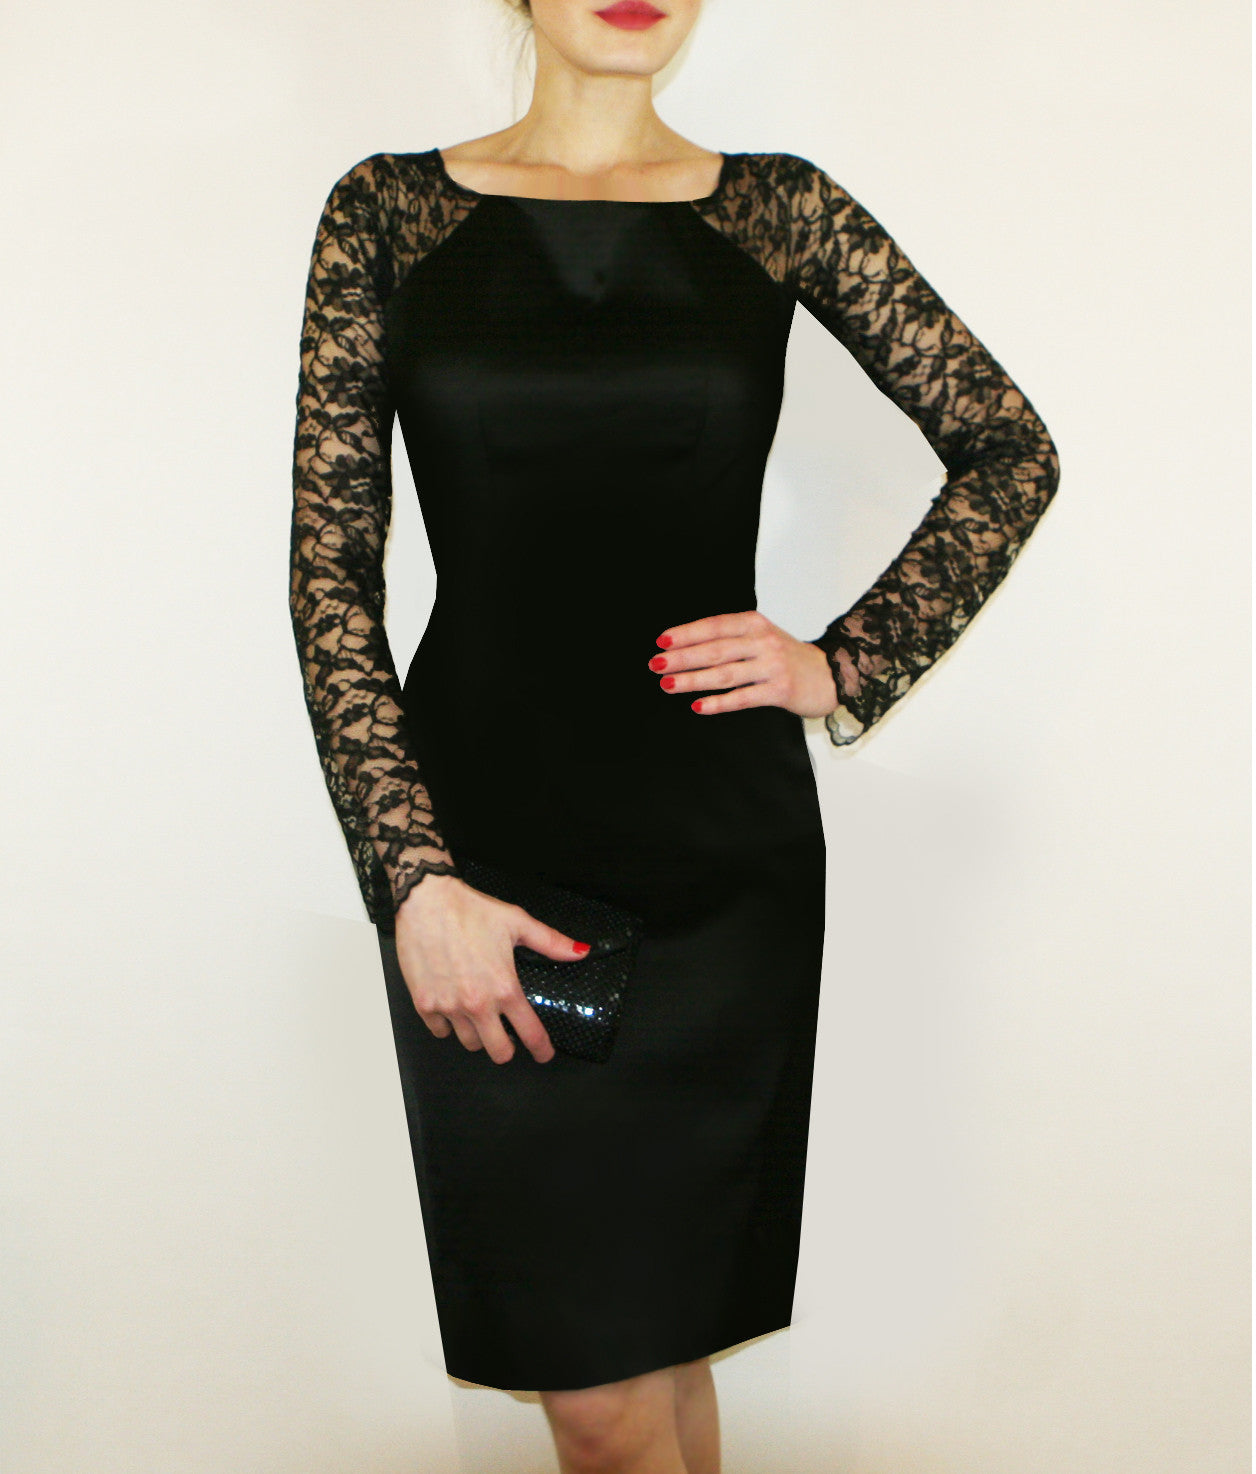 London Dress - Lace Sleeved Black dress